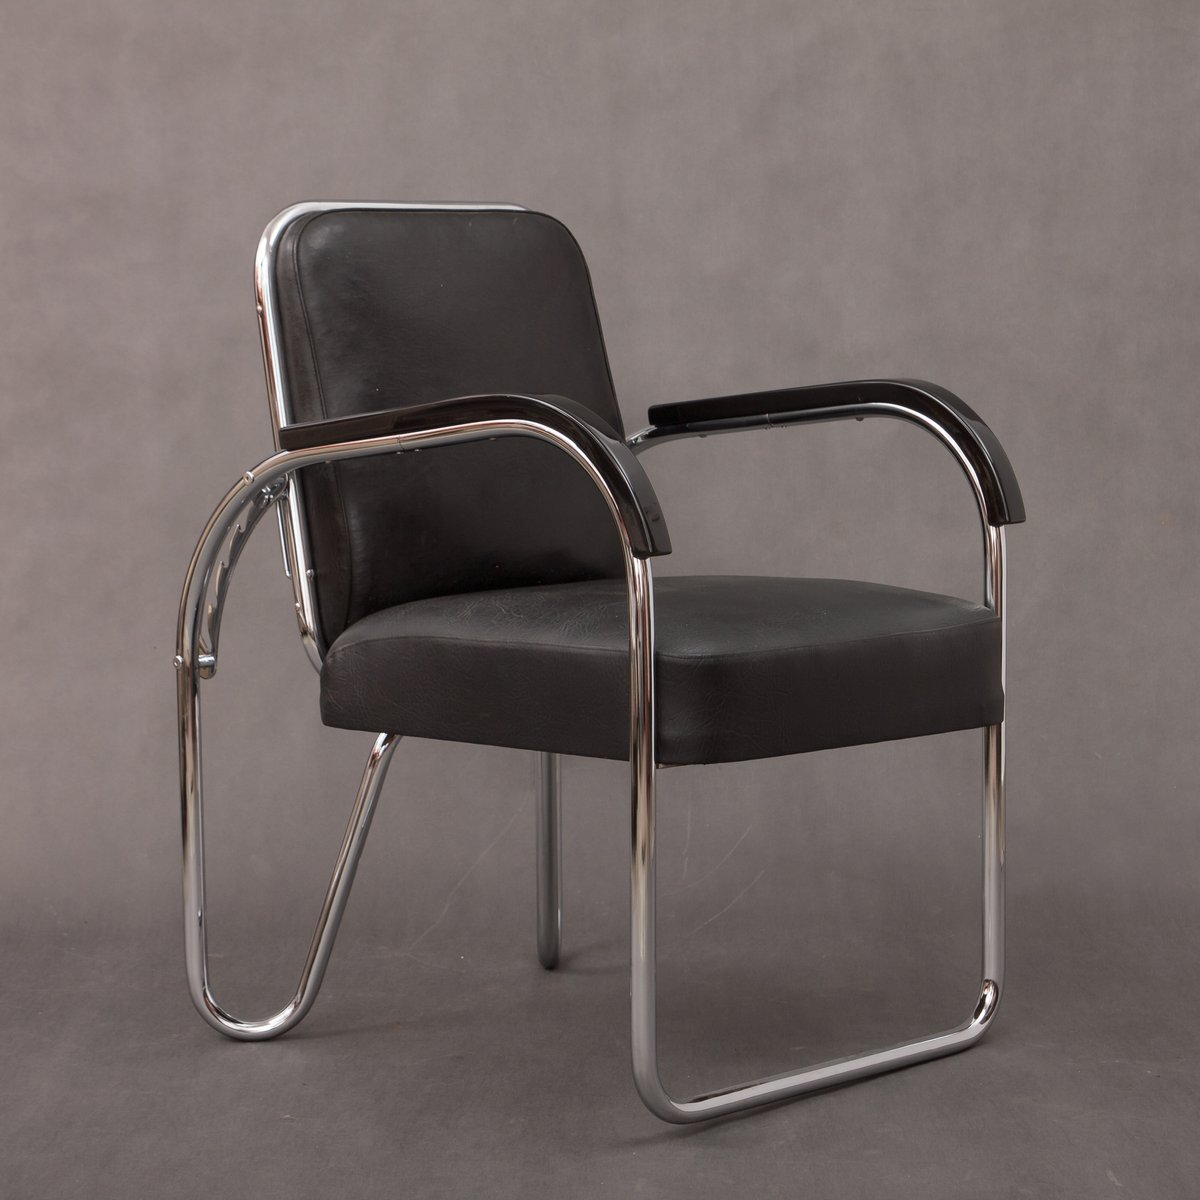 Foldable Bauhaus Chair From Ds Staal 1930s For Sale At Pamono